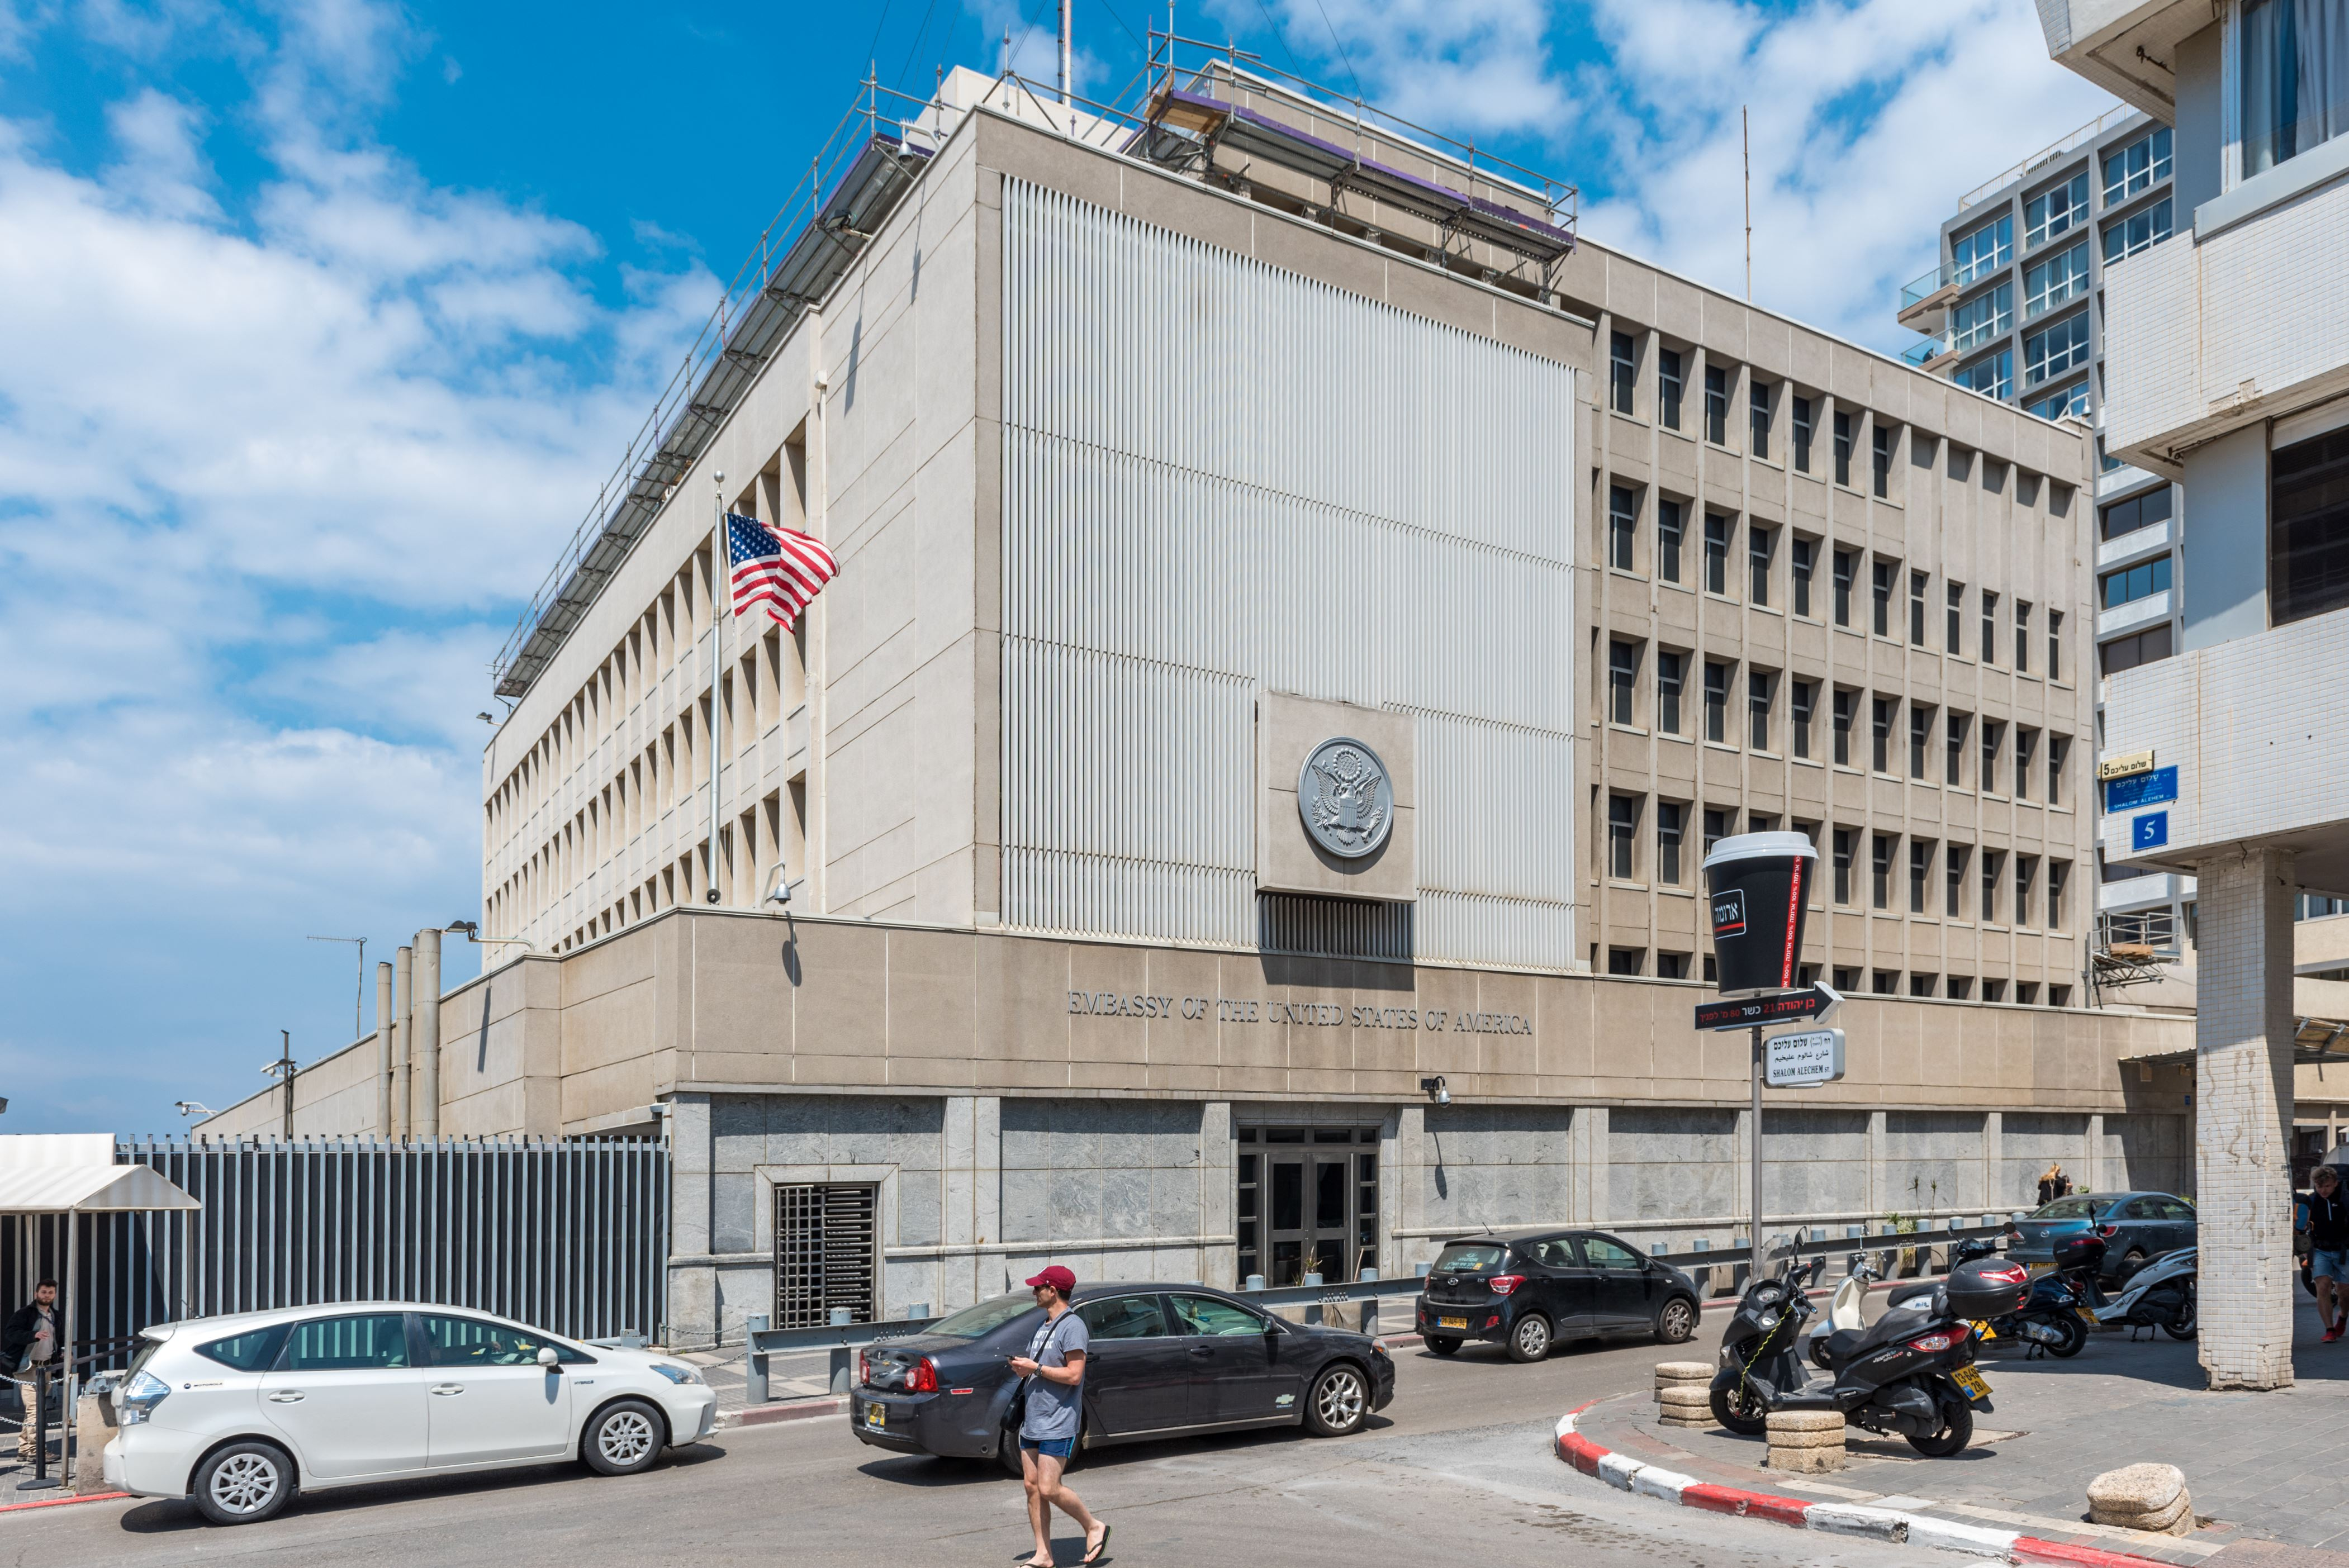 Trump considers when and how to move U.S. embassy in Israel to Jerusalem - Pence